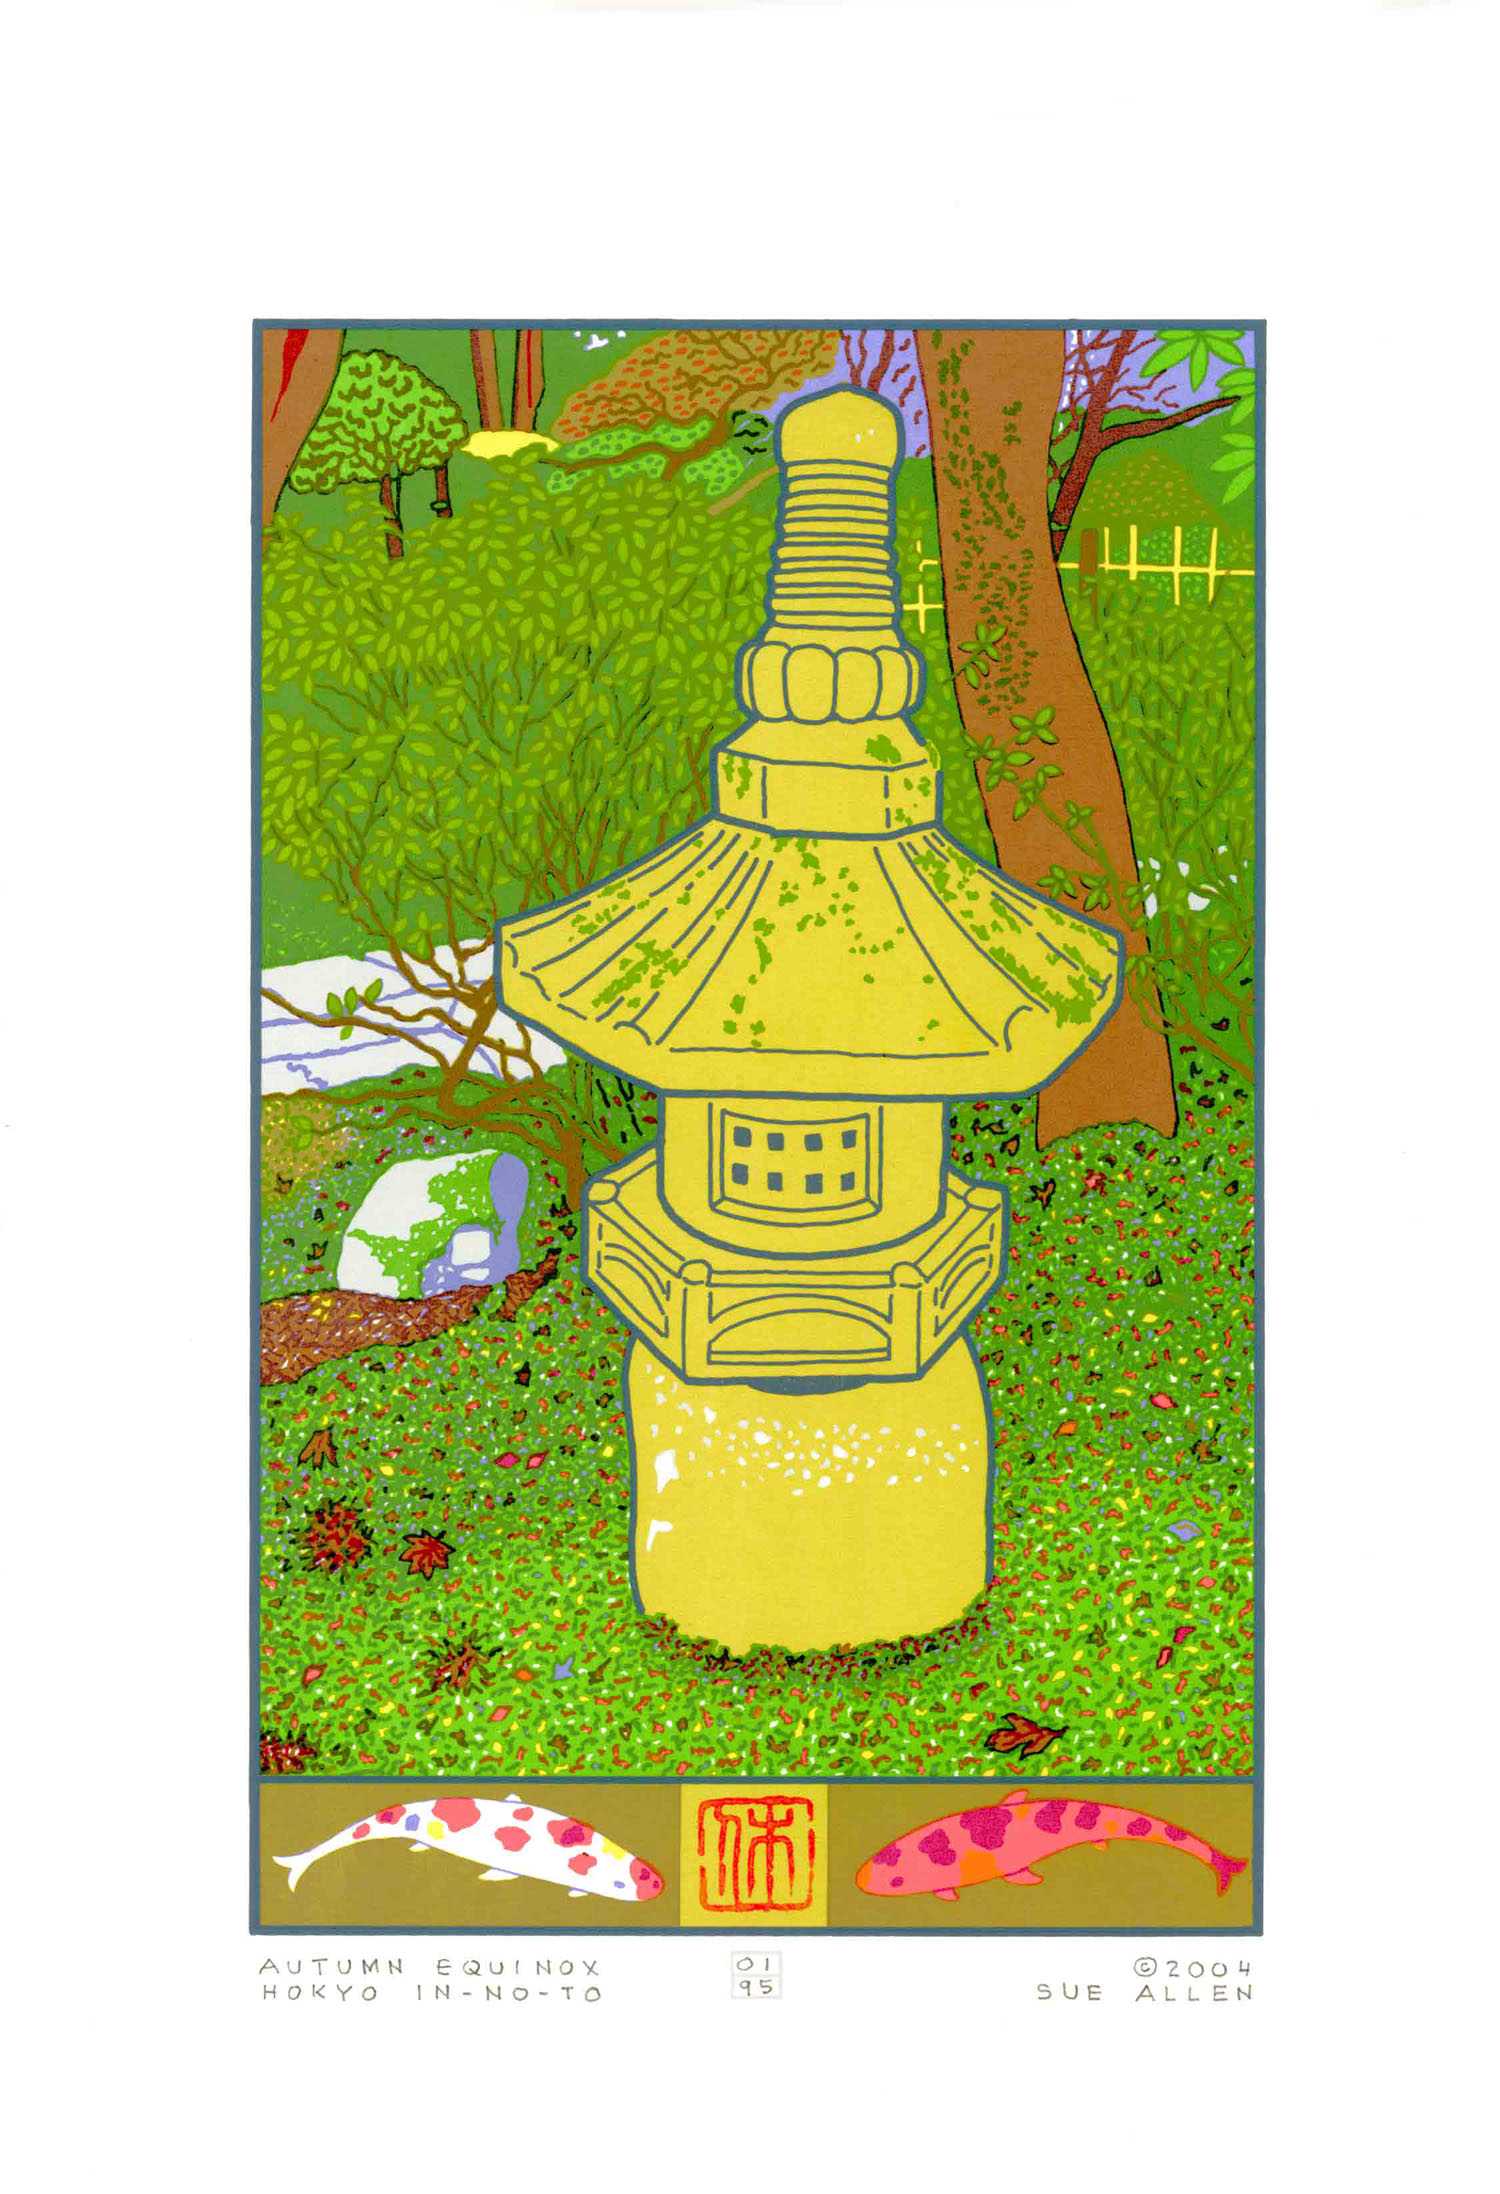 AUTUMN EQUINOX- HOKYO IN-NO-TO  SPIRIT HOUSE LANTERN